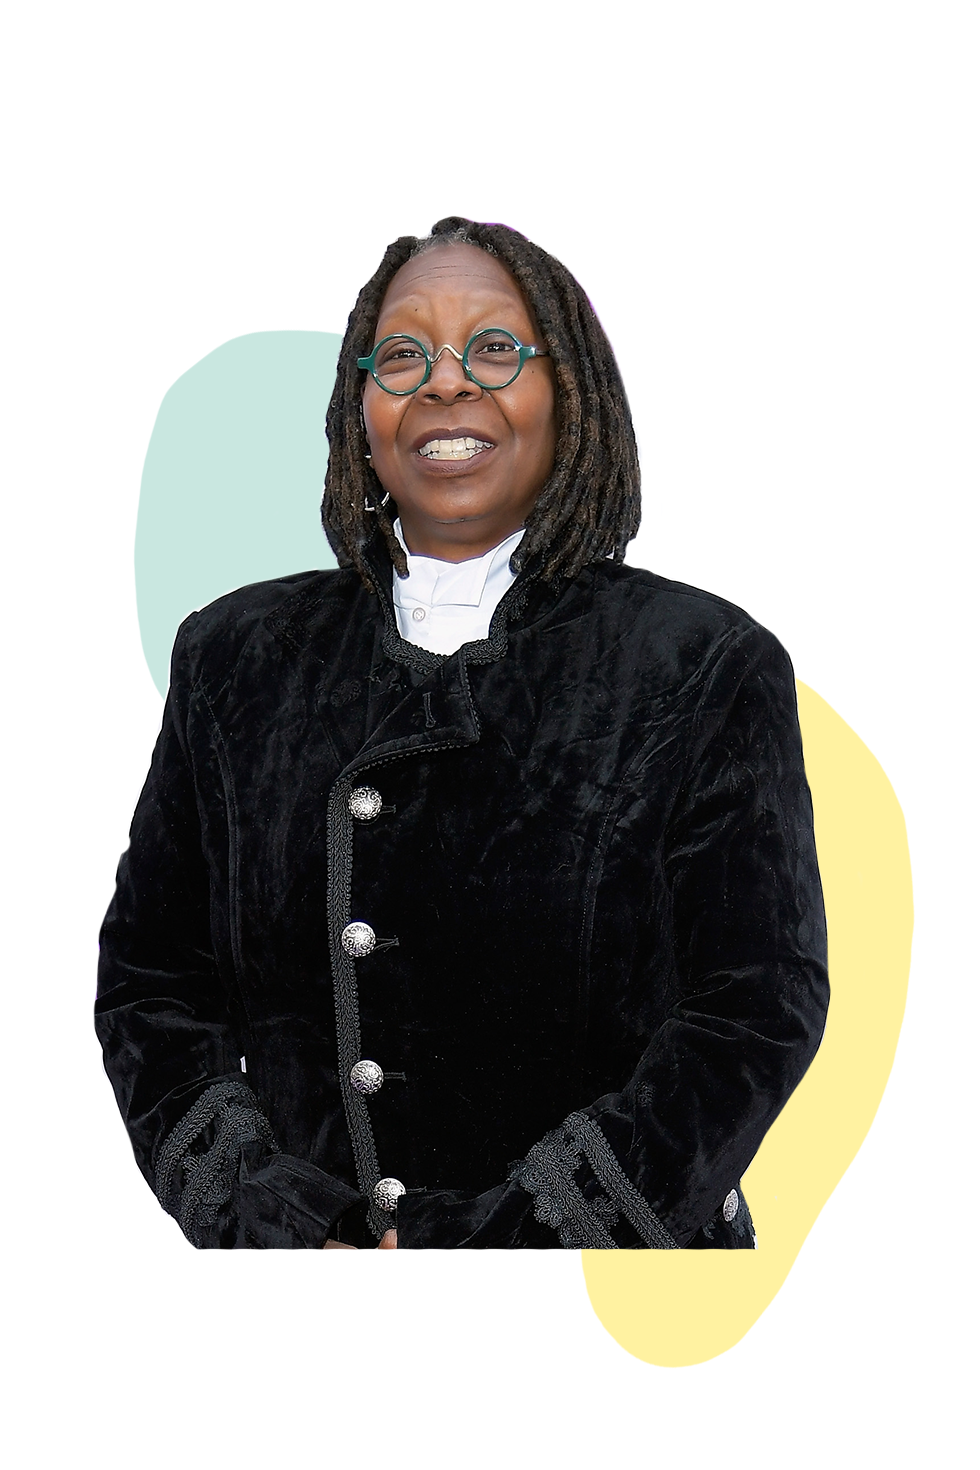 Whoopi Goldberg The View co-host is the co-founder of Whoopi & Maya , a company that specializes in the legal distribution of medical marijuana. Another mainstay of the brand?